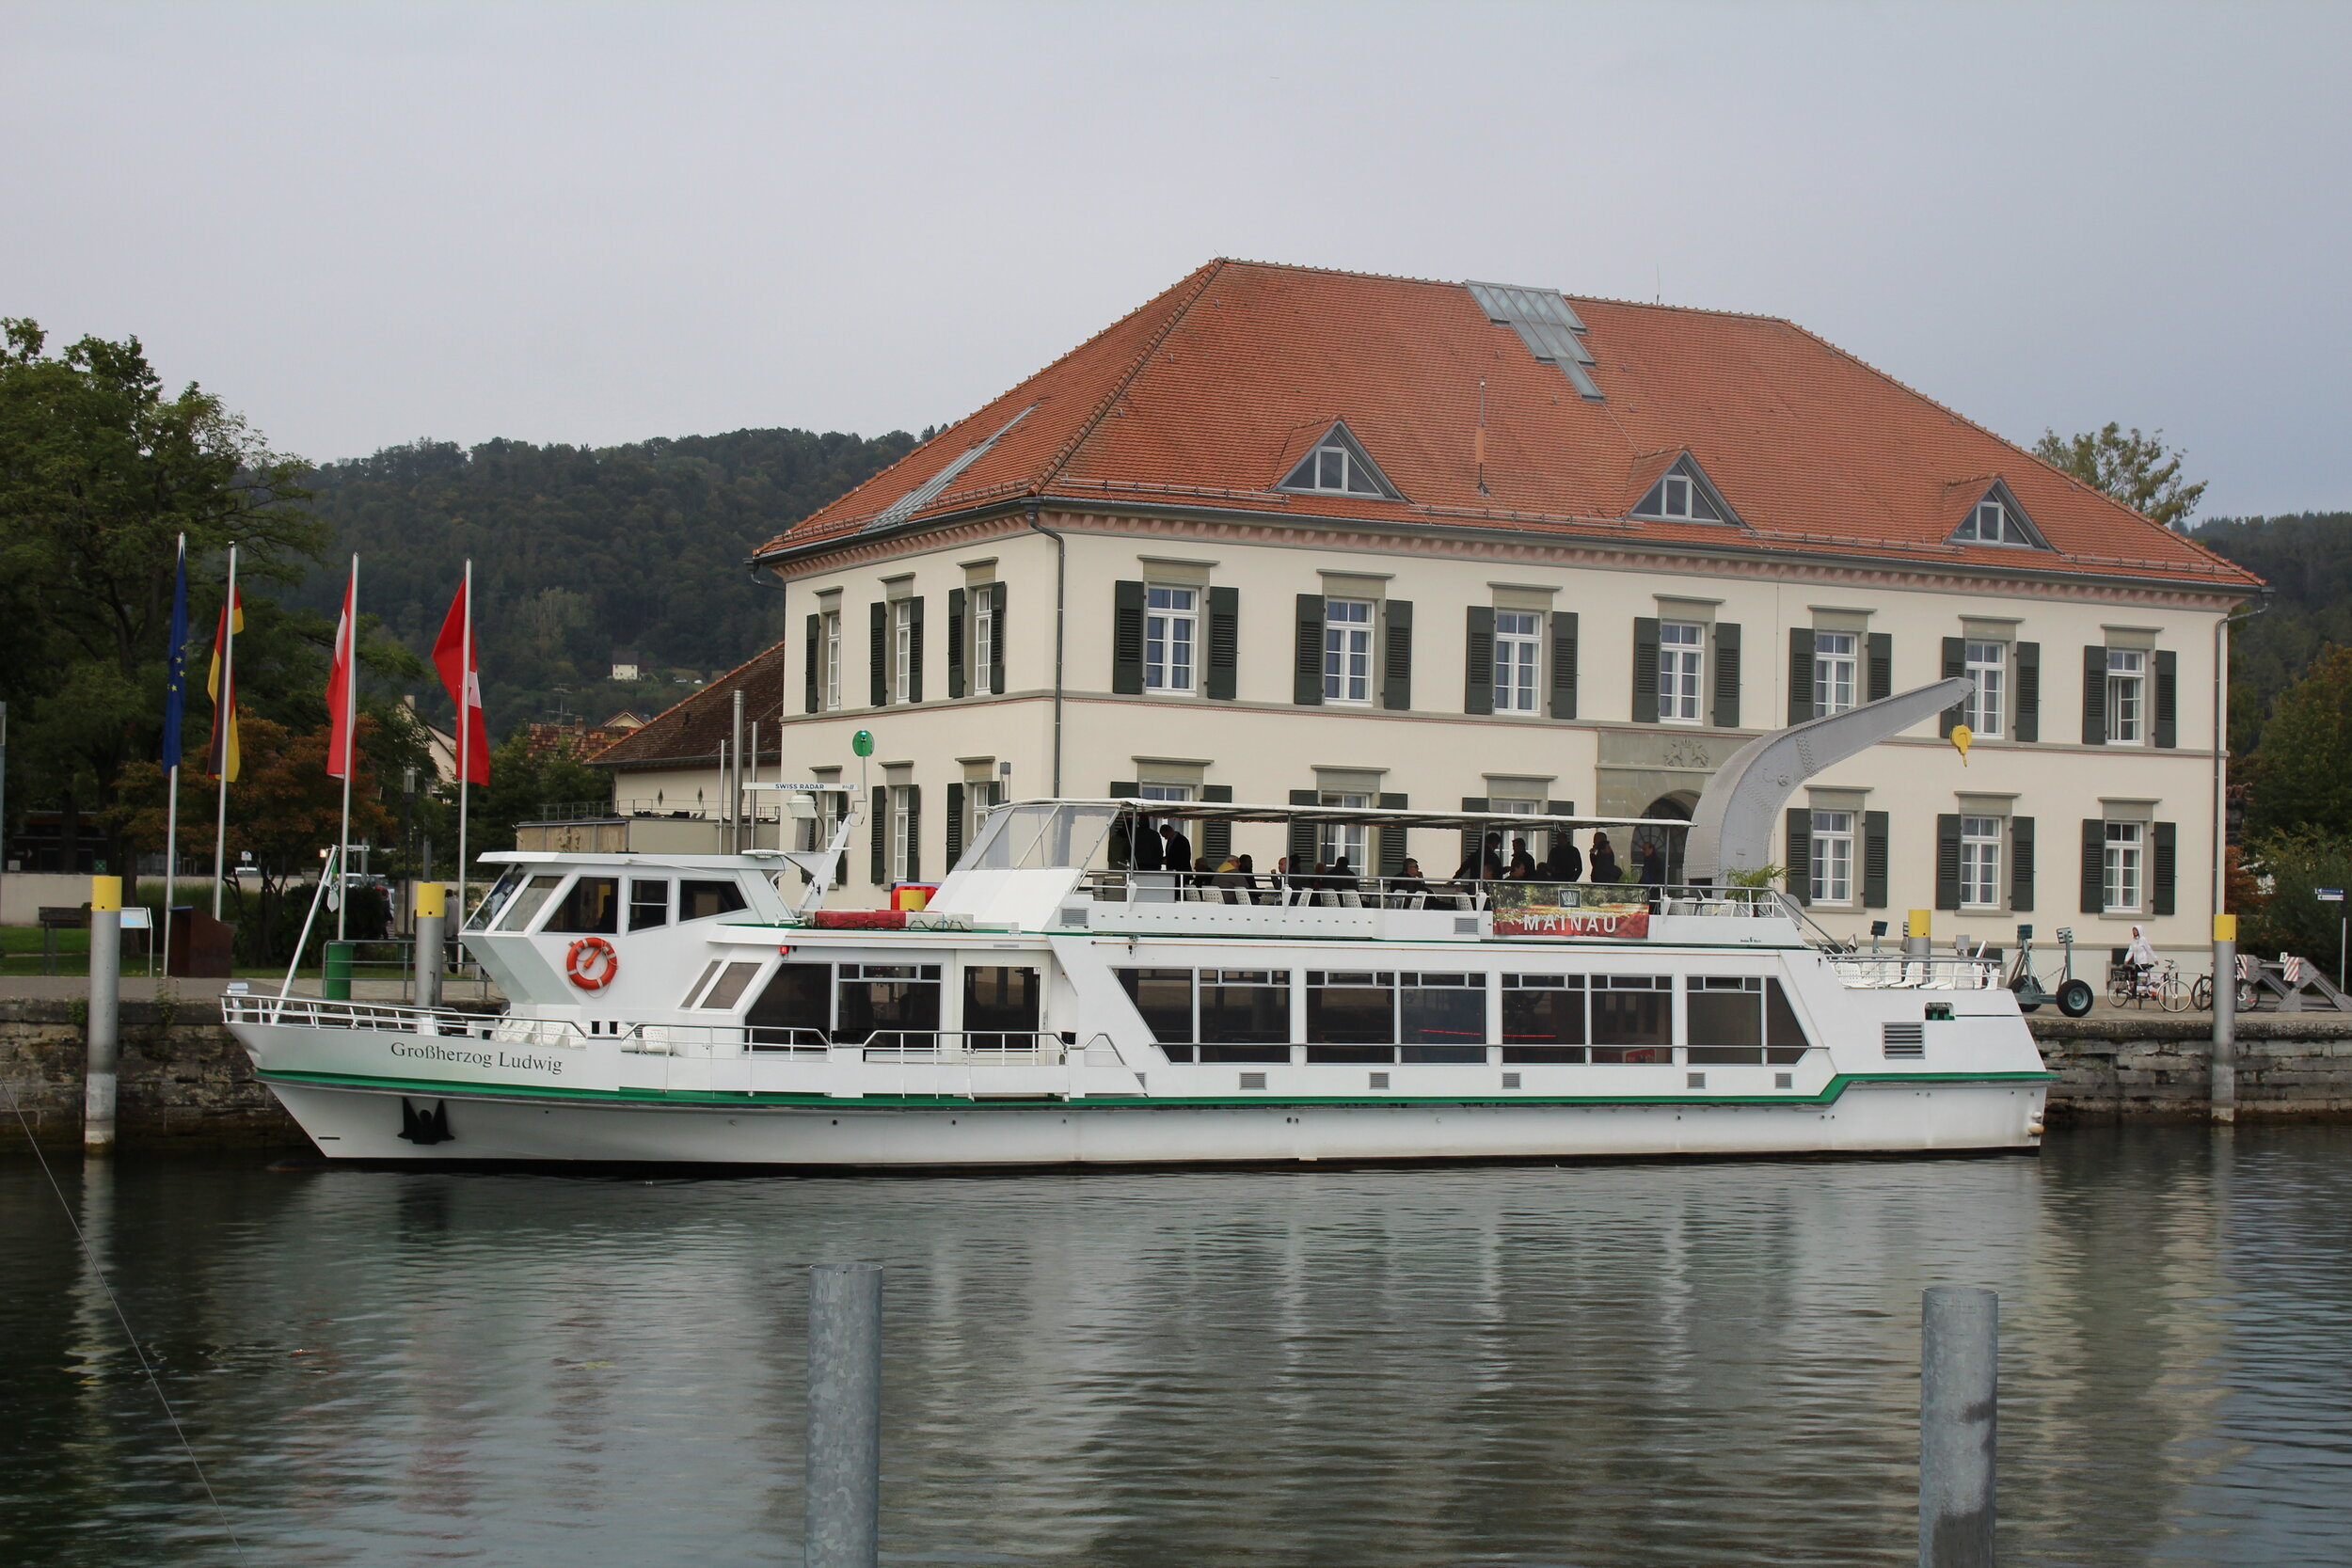 Participants unwind for the evening on boat trip to Mainau